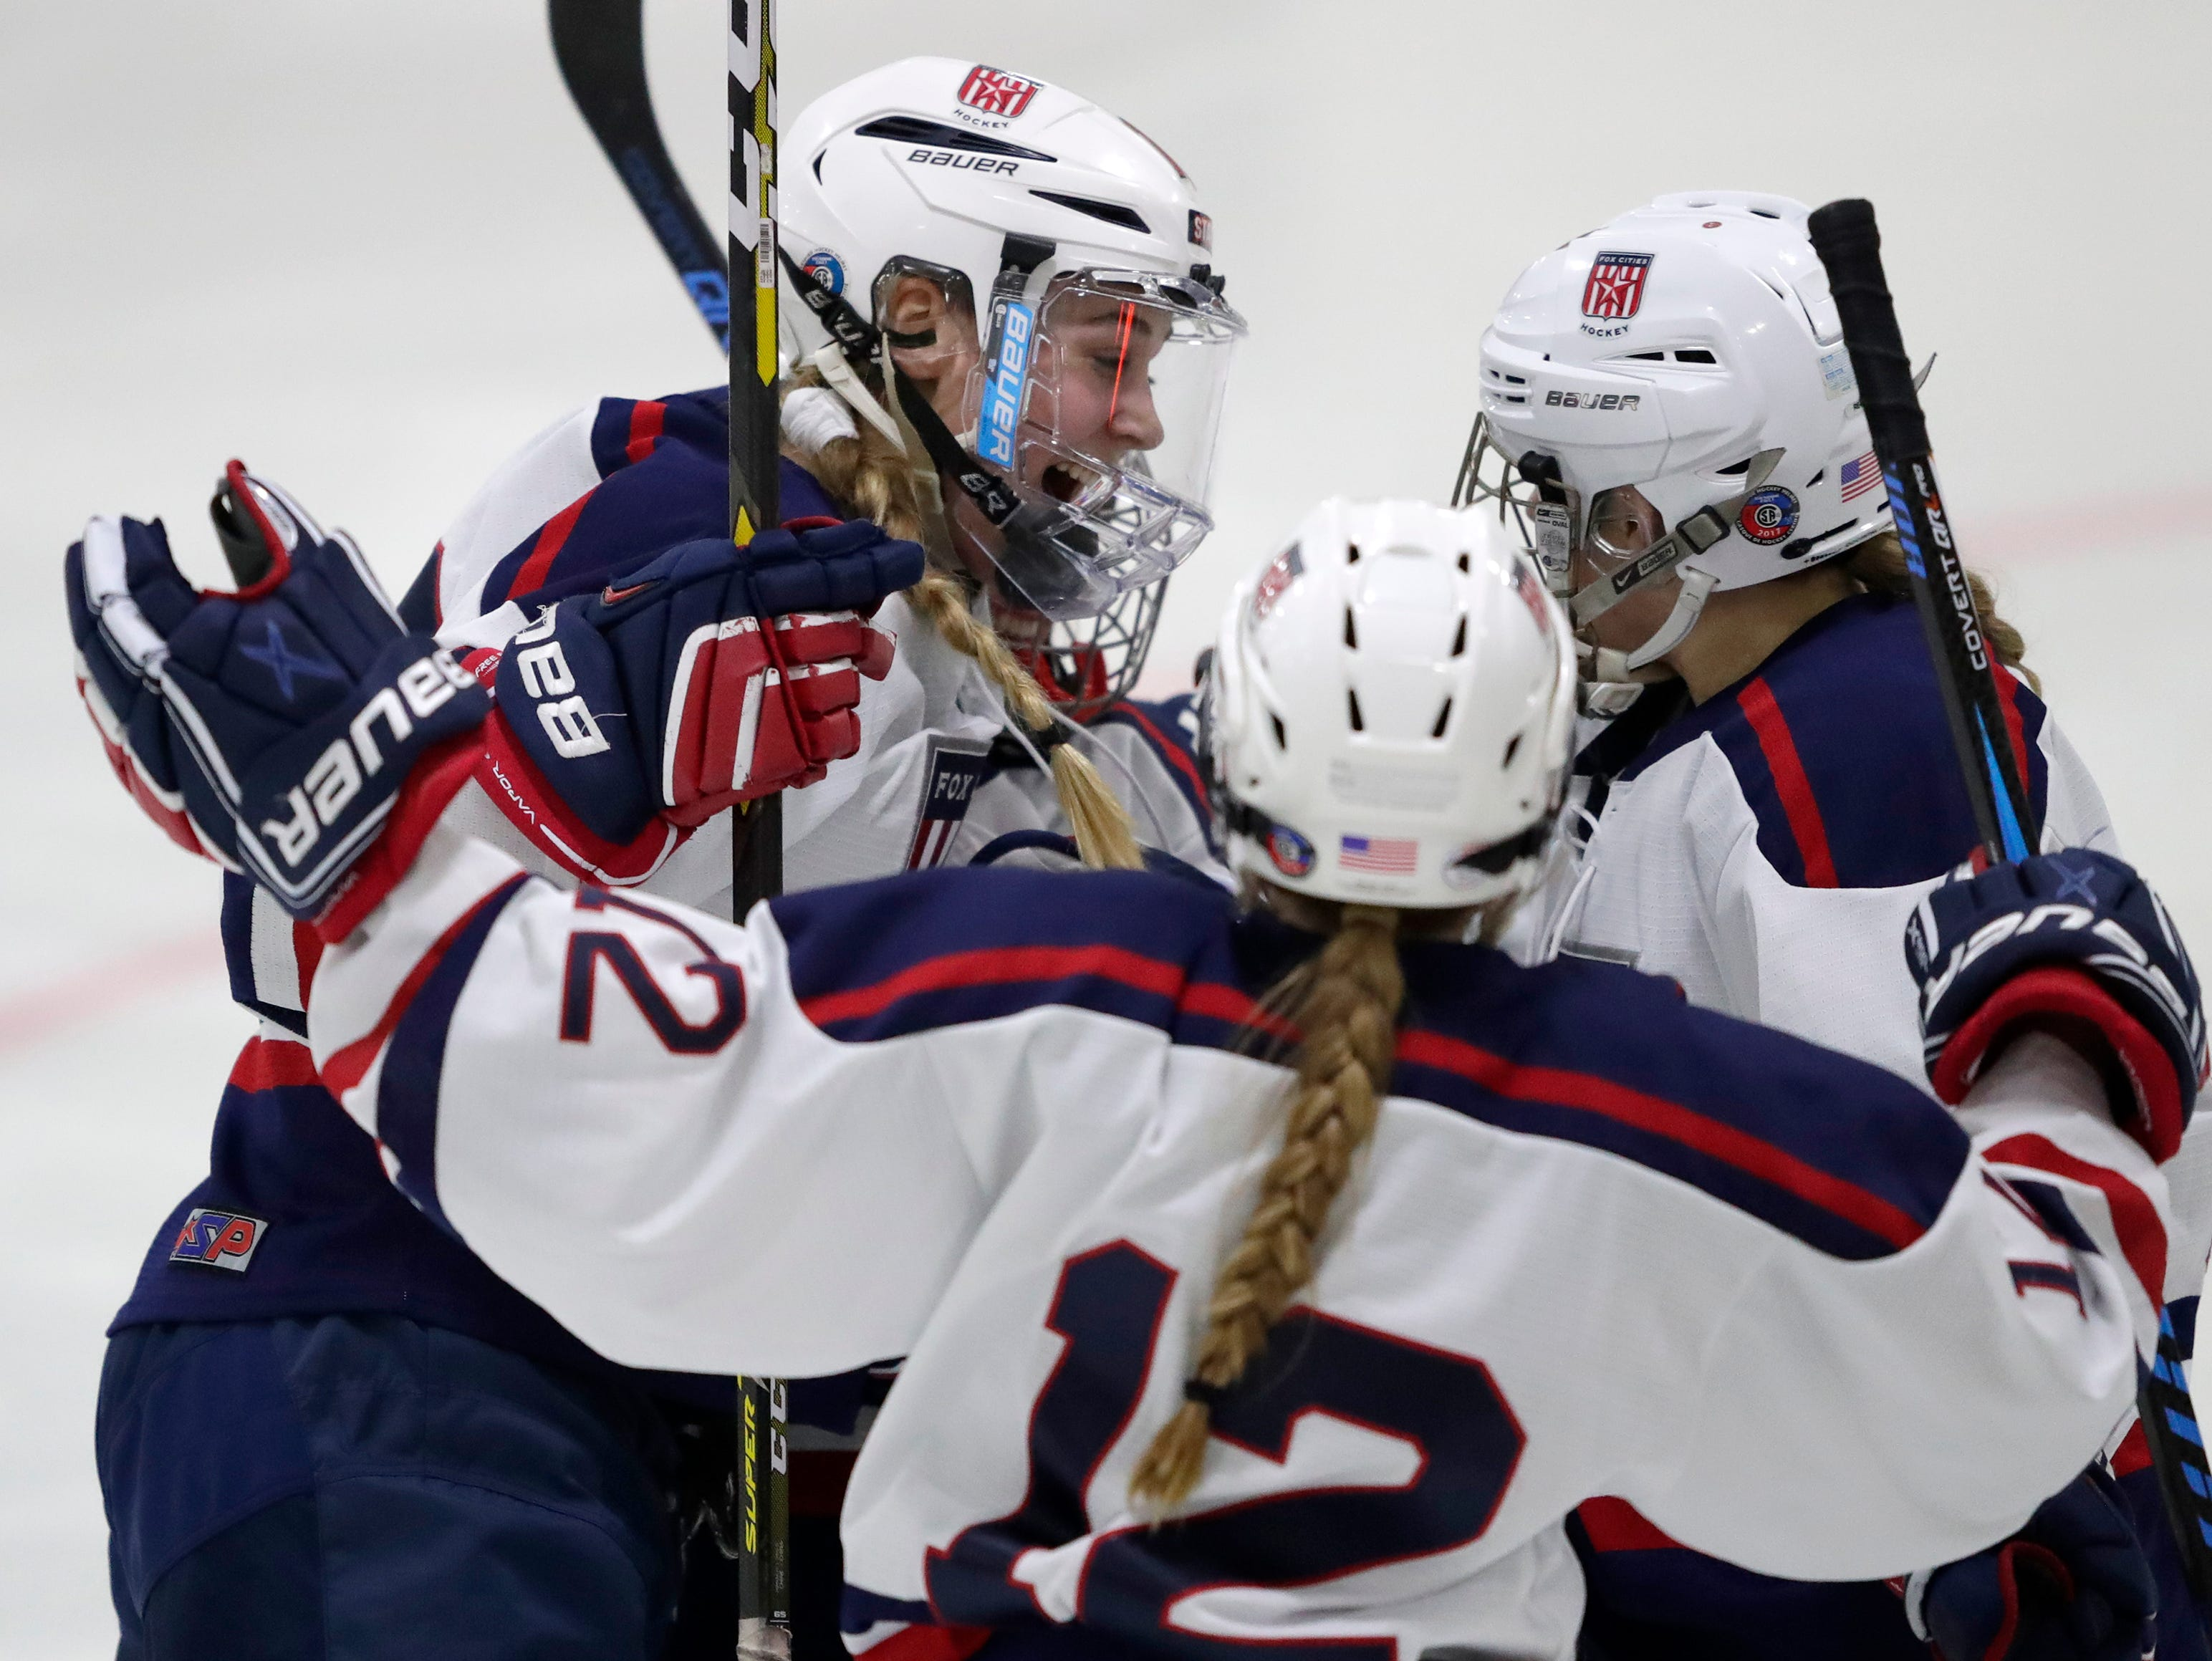 Fox Cities Stars' Madelynn Jablonski (10), Annika Horman (12) and Sarah Marvin (21) celebrates after Marvin scored a goal against the Warbirds during their girls hockey game Thursday, January 10, 2019, at Tri-County Ice Arena in Fox Crossing, Wis. 